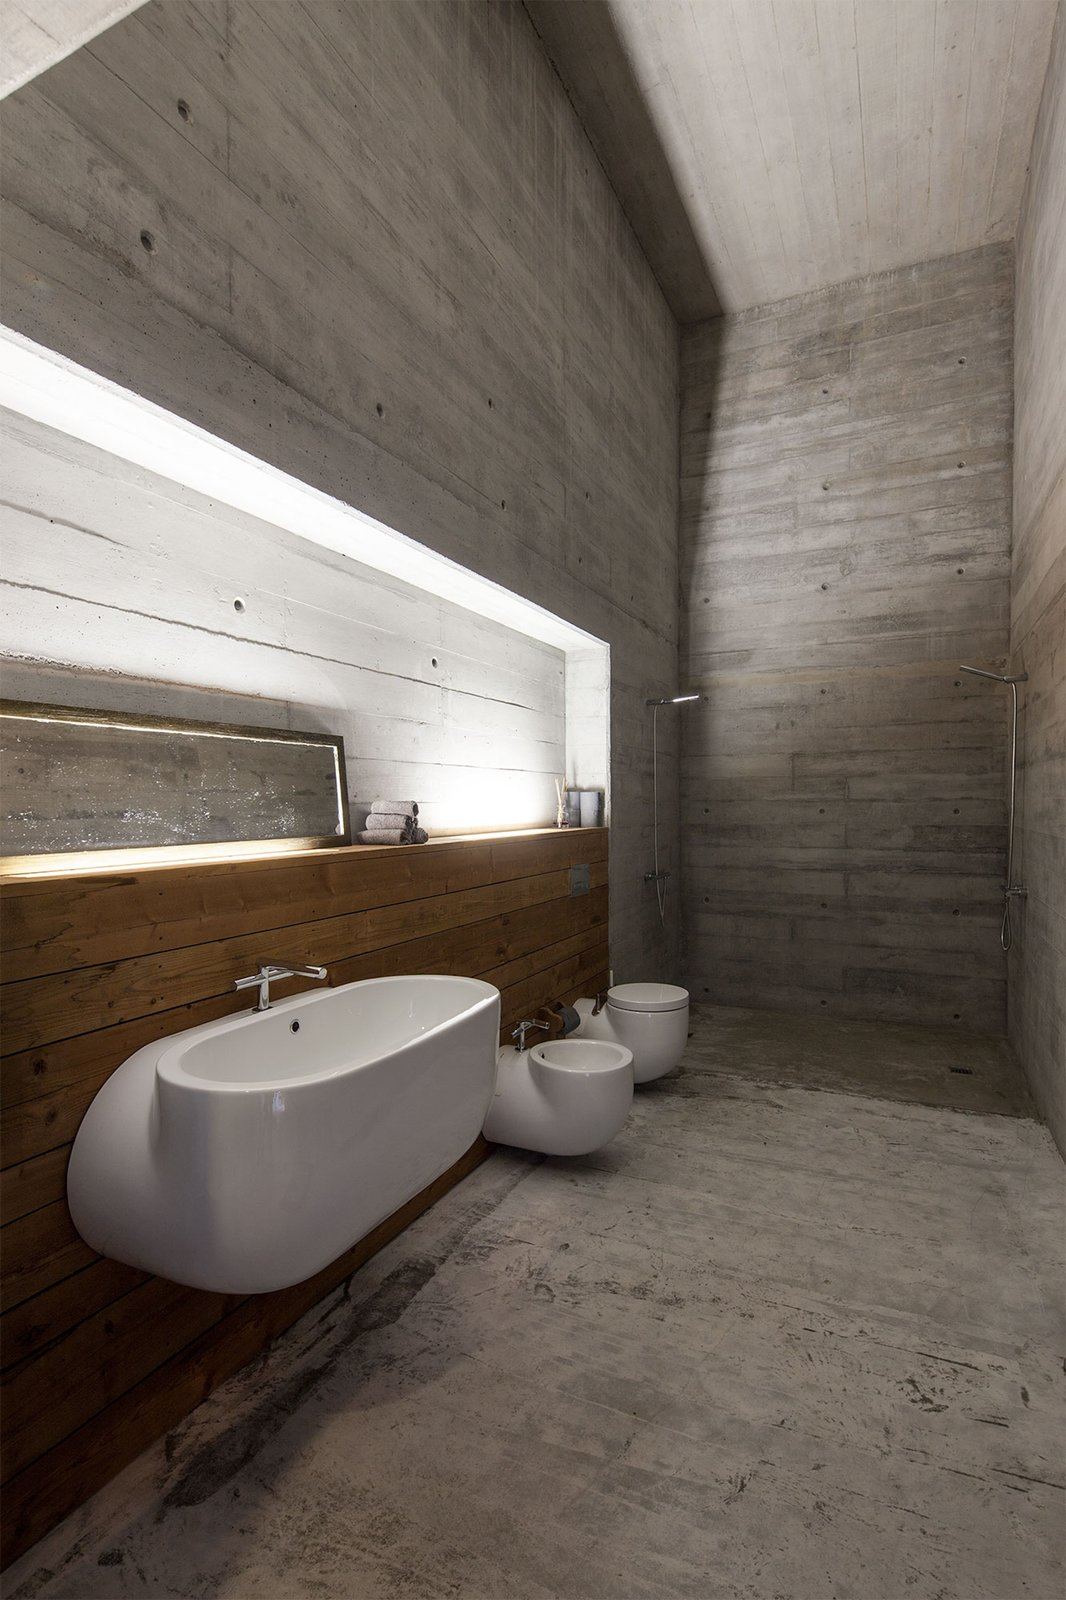 Bath, One Piece, Concrete, Wall Mount, Concrete, Recessed, Wood, and Open An industrial-inspired bathroom has fixtures that look like sections of cut pipes.  Best Bath Wood Recessed Photos from Two Ponds Bookend This Concrete-and-Wood Residence in Portugal